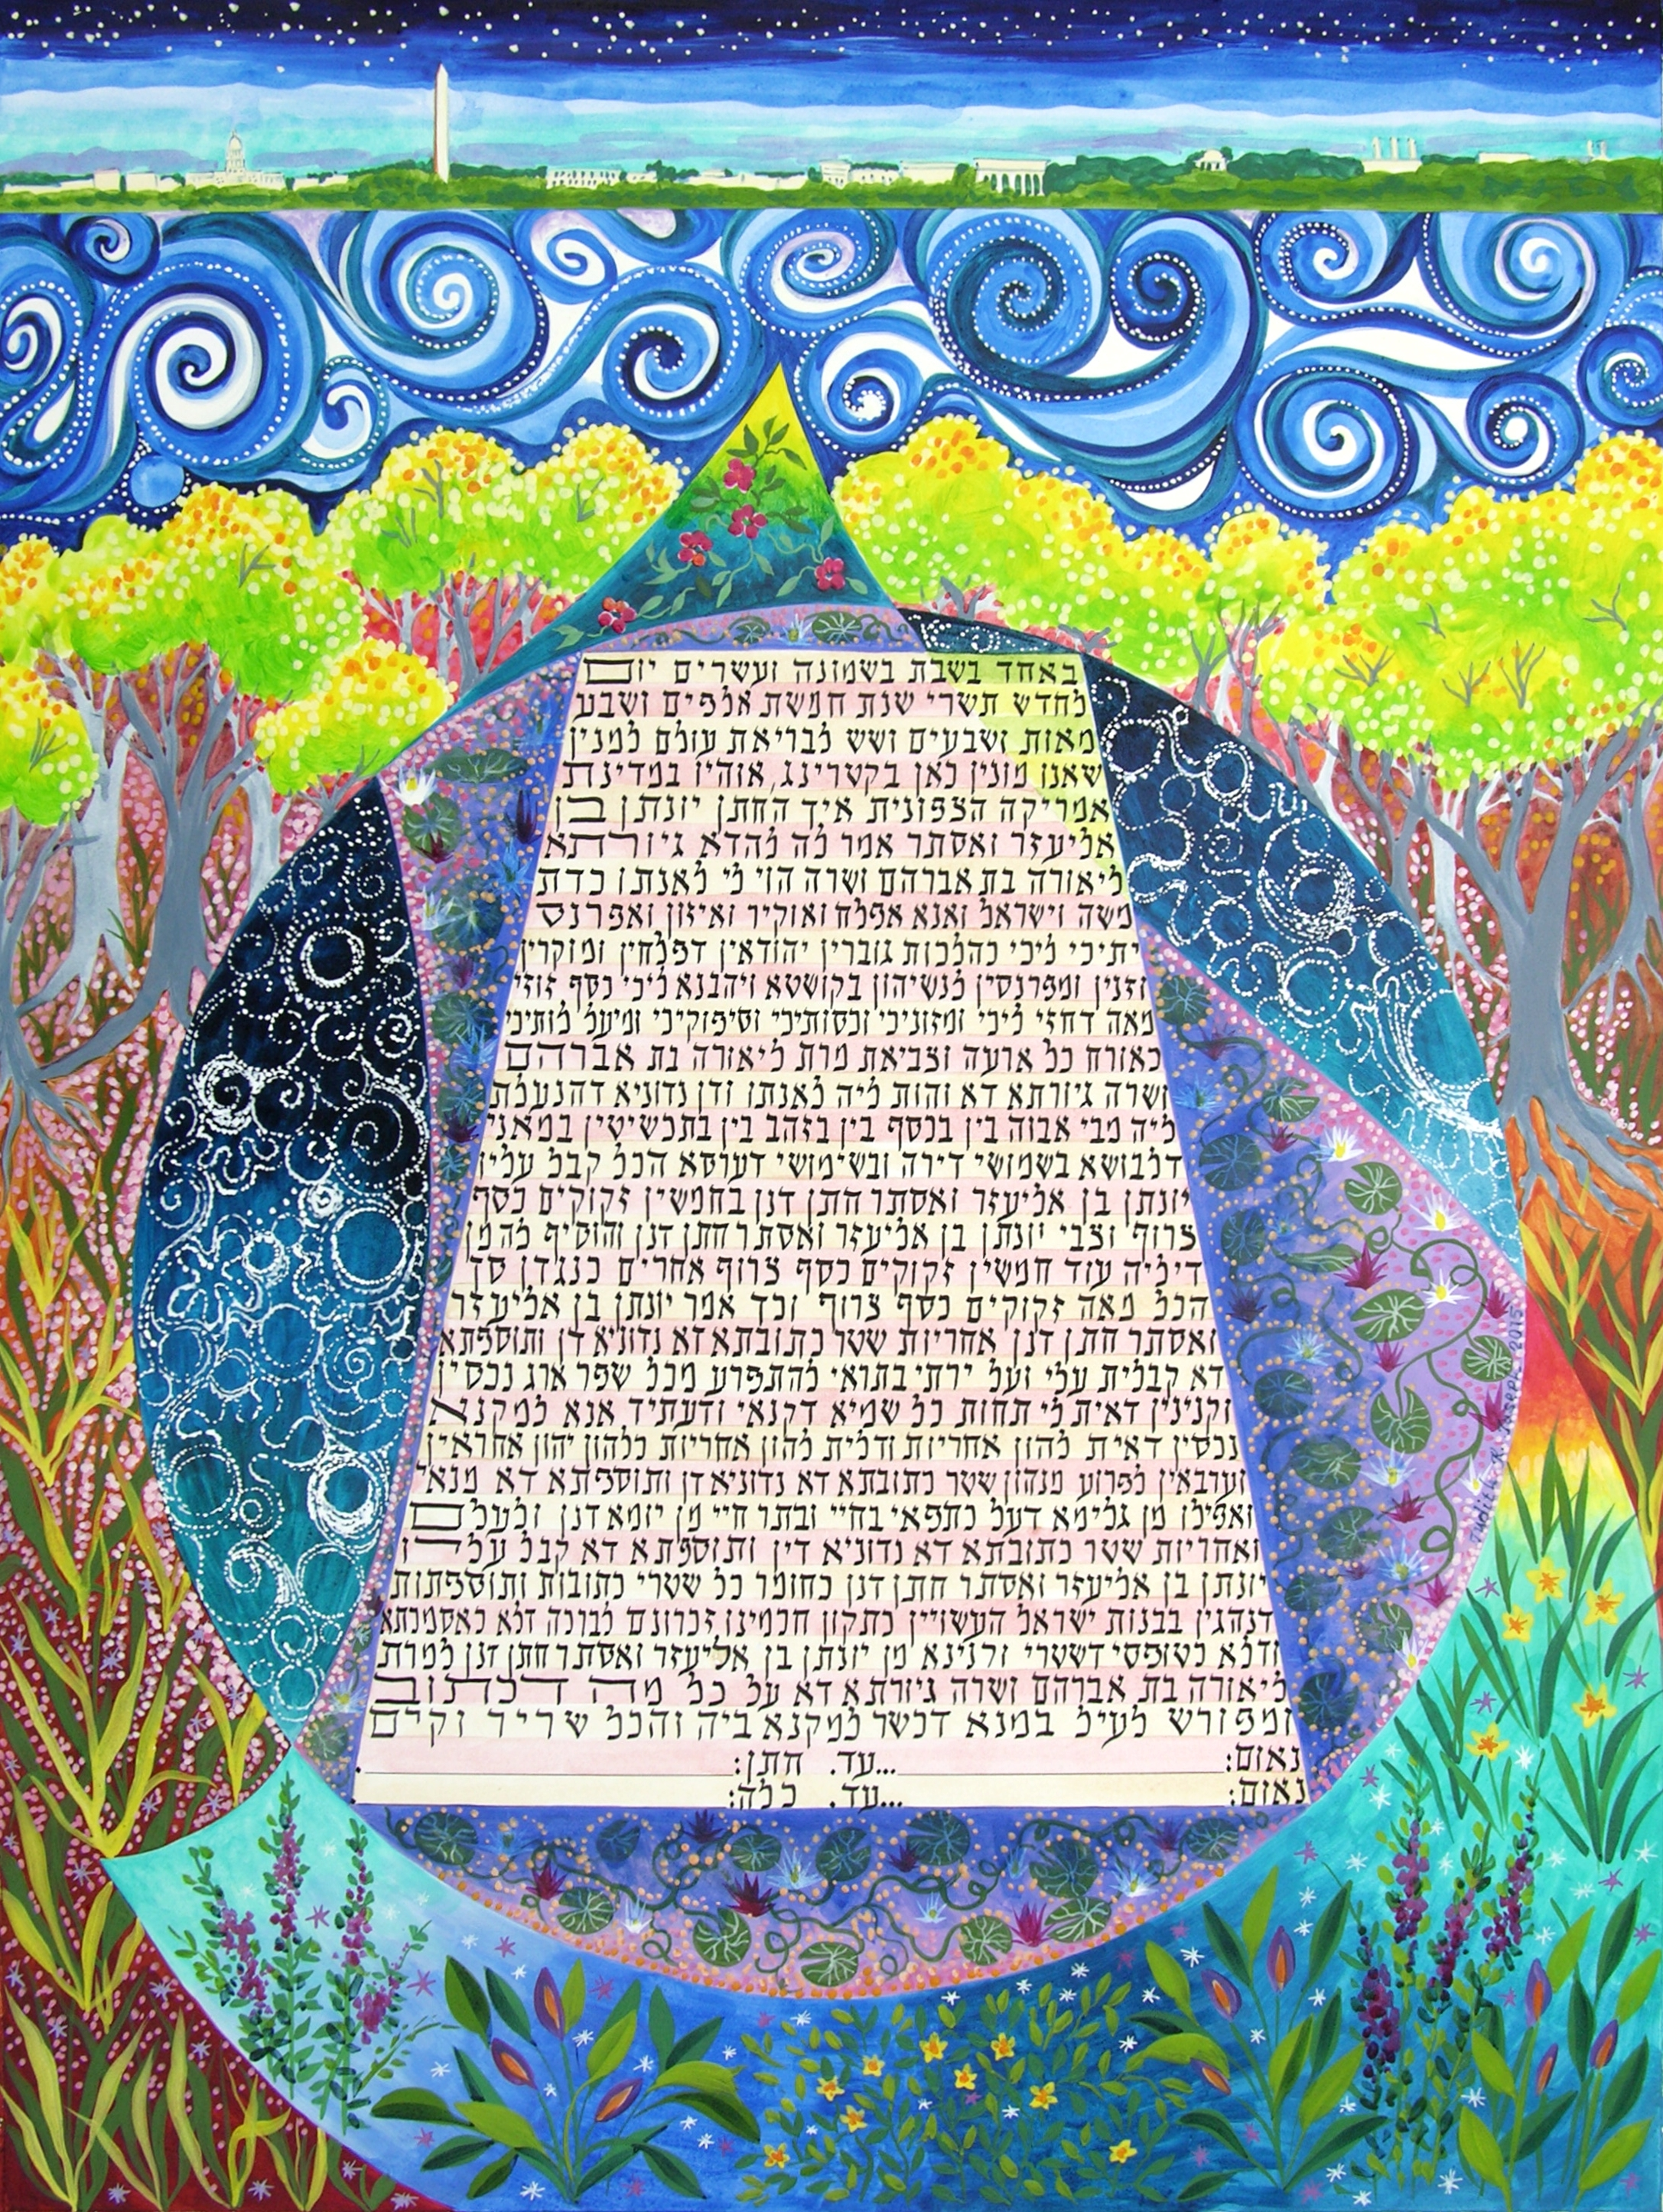 Boardwalk Ketubah, Kettering, Ohio 2015